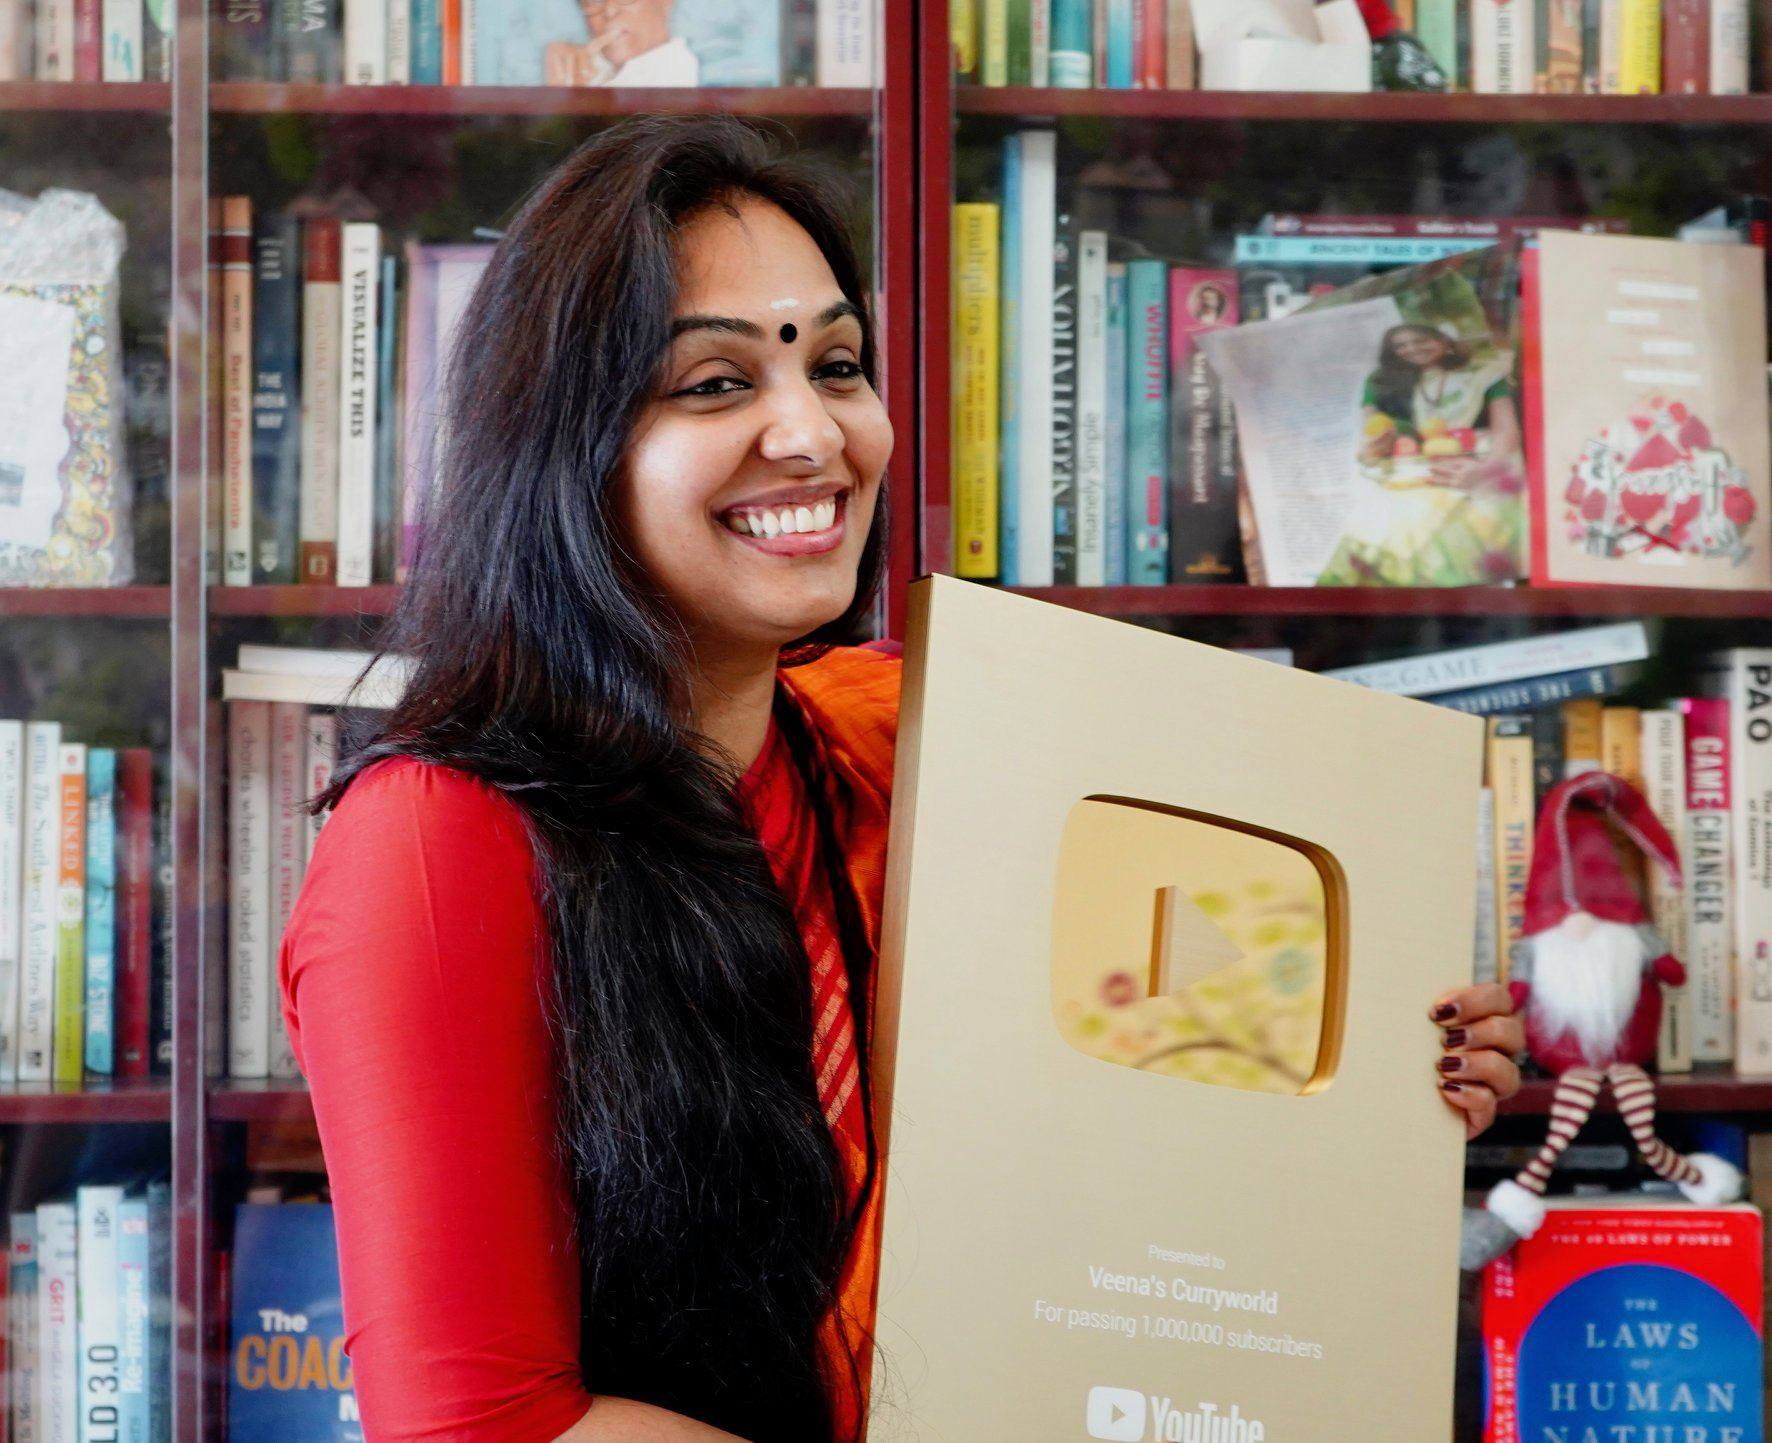 Popularity of Veena's Curry World fetched her the YouTube Golden Play Button, making her the first Malayalee woman to earn it.